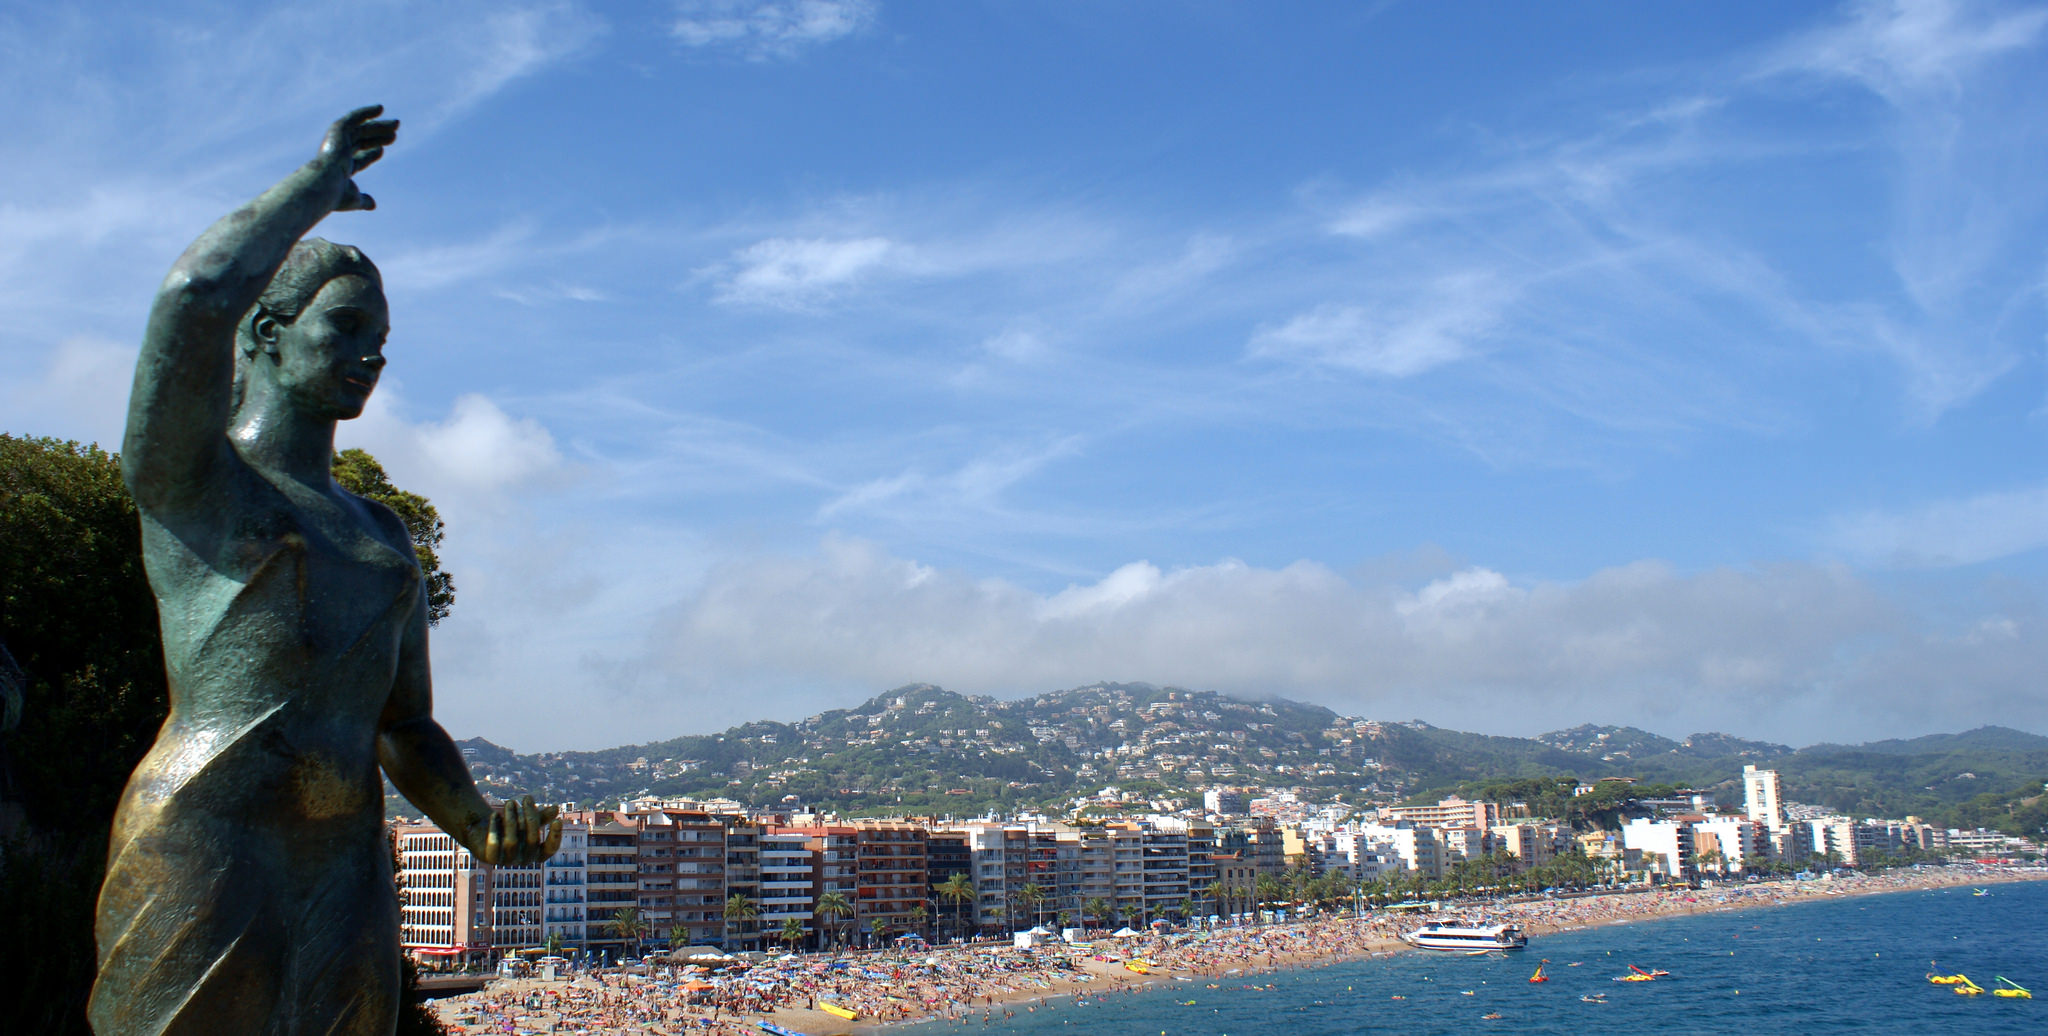 20 Things To Do in Lloret de Mar